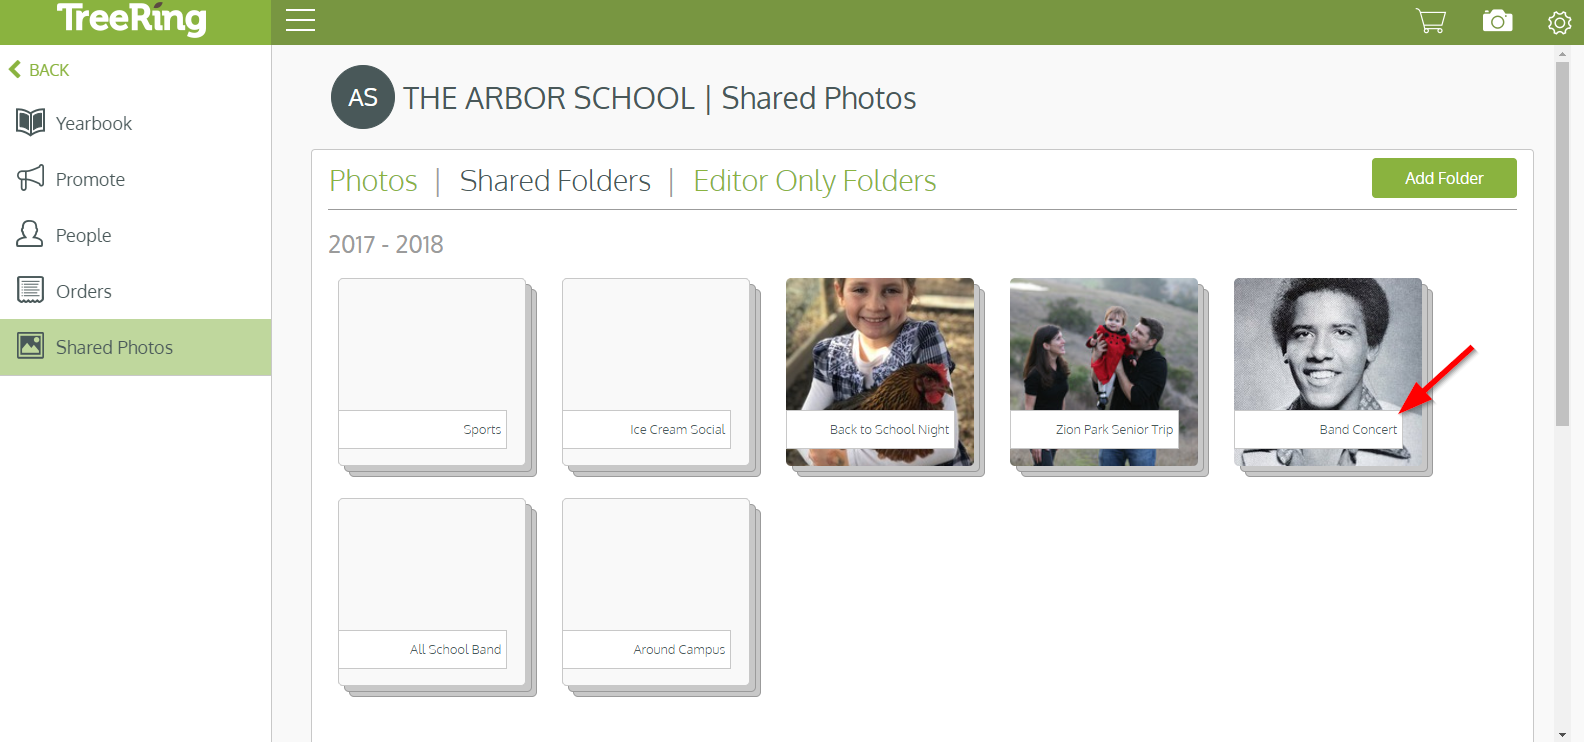 Photos___Shared_Folders_-_Editing_Folder_-_Name_Type_Delete.png